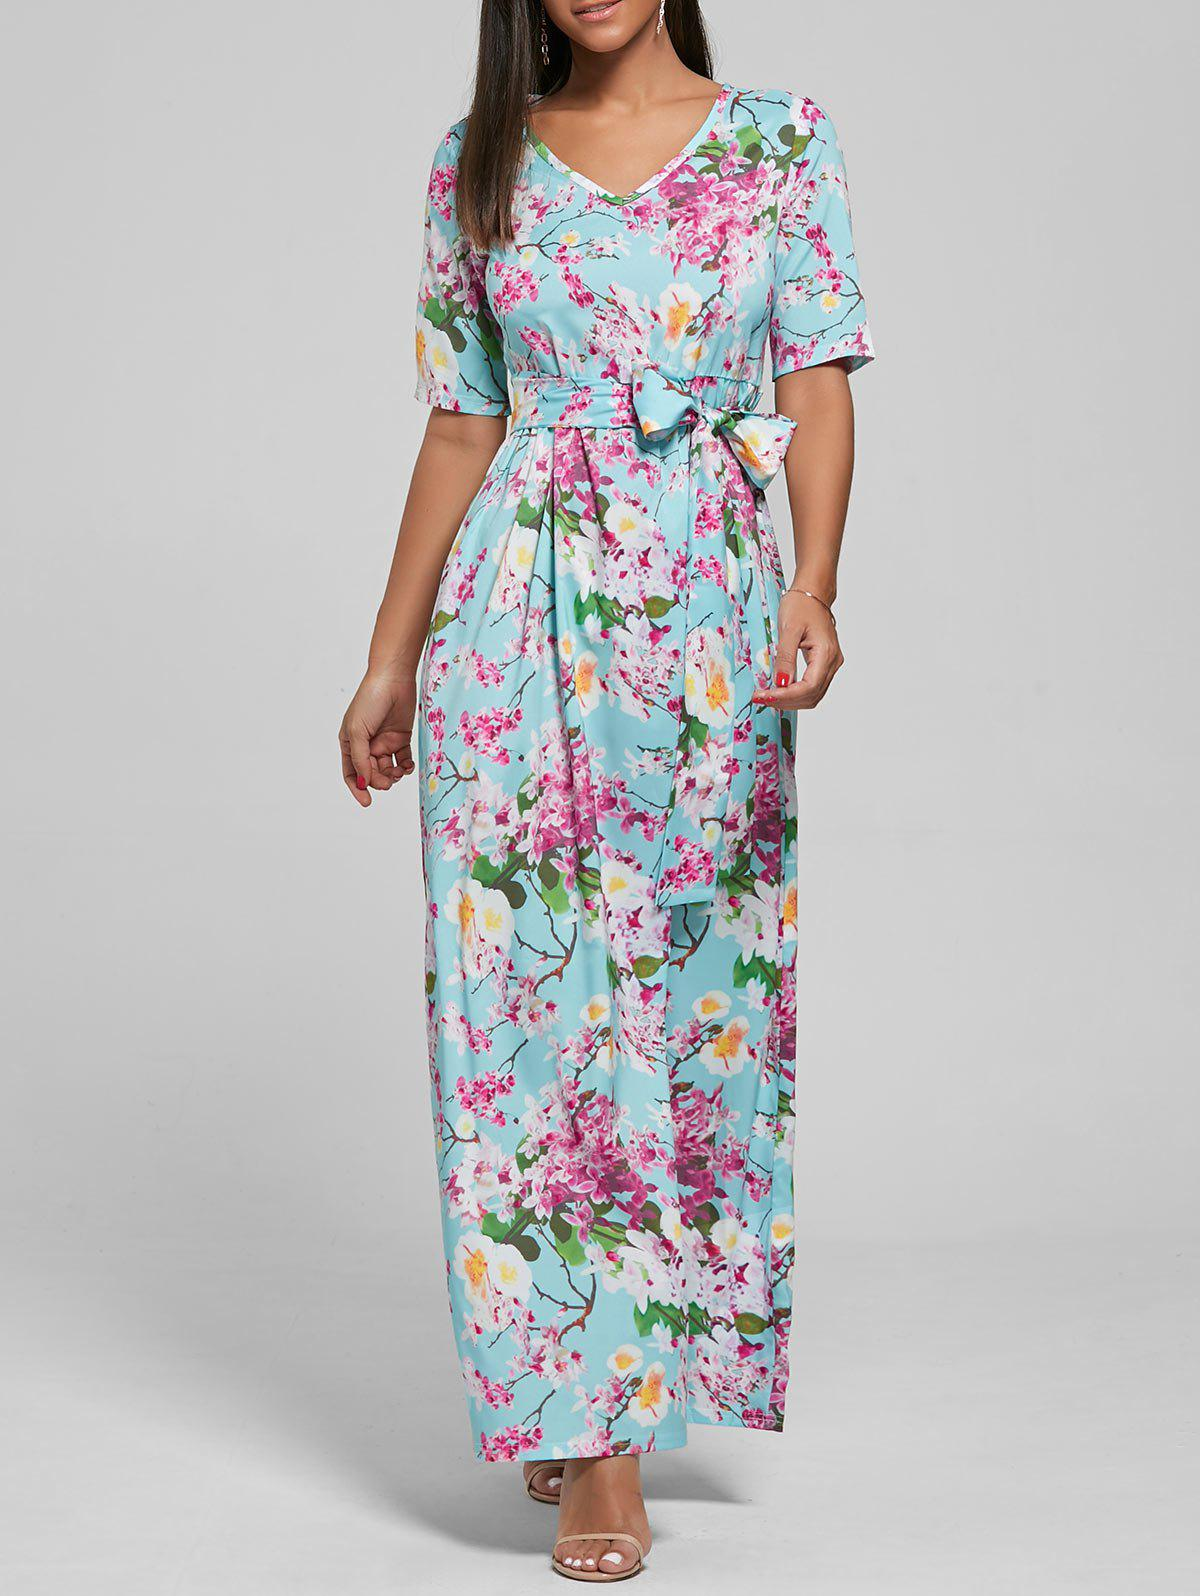 Bohemian V Neck Floral Maxi Dress - WINDSOR BLUE XL